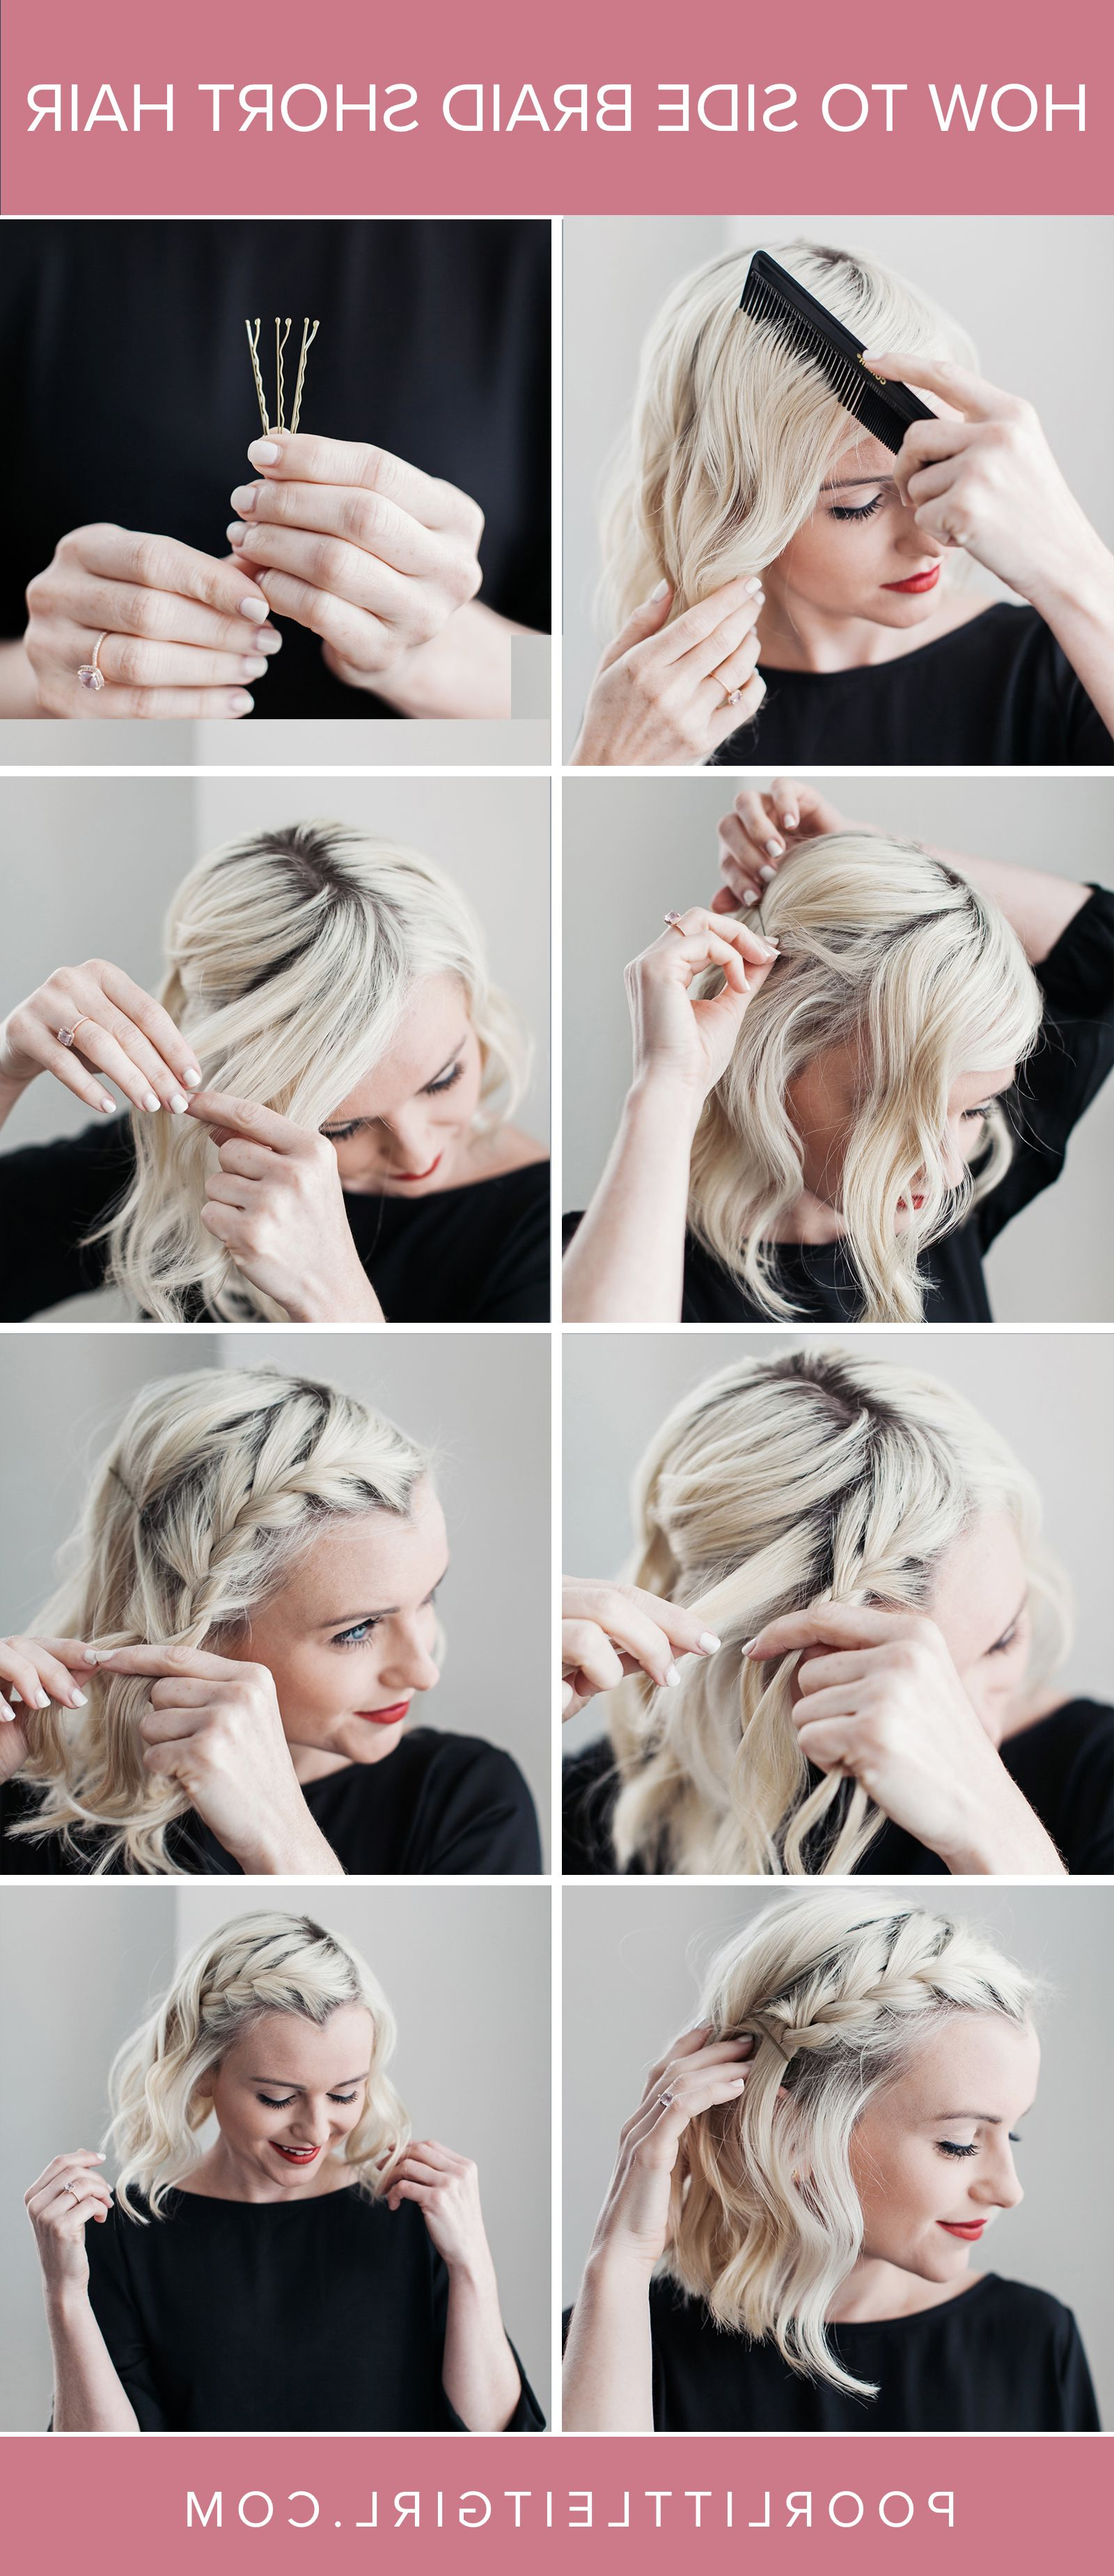 Hair Styles, Colors With Famous Long And Short Bob Braid Hairstyles (View 13 of 20)